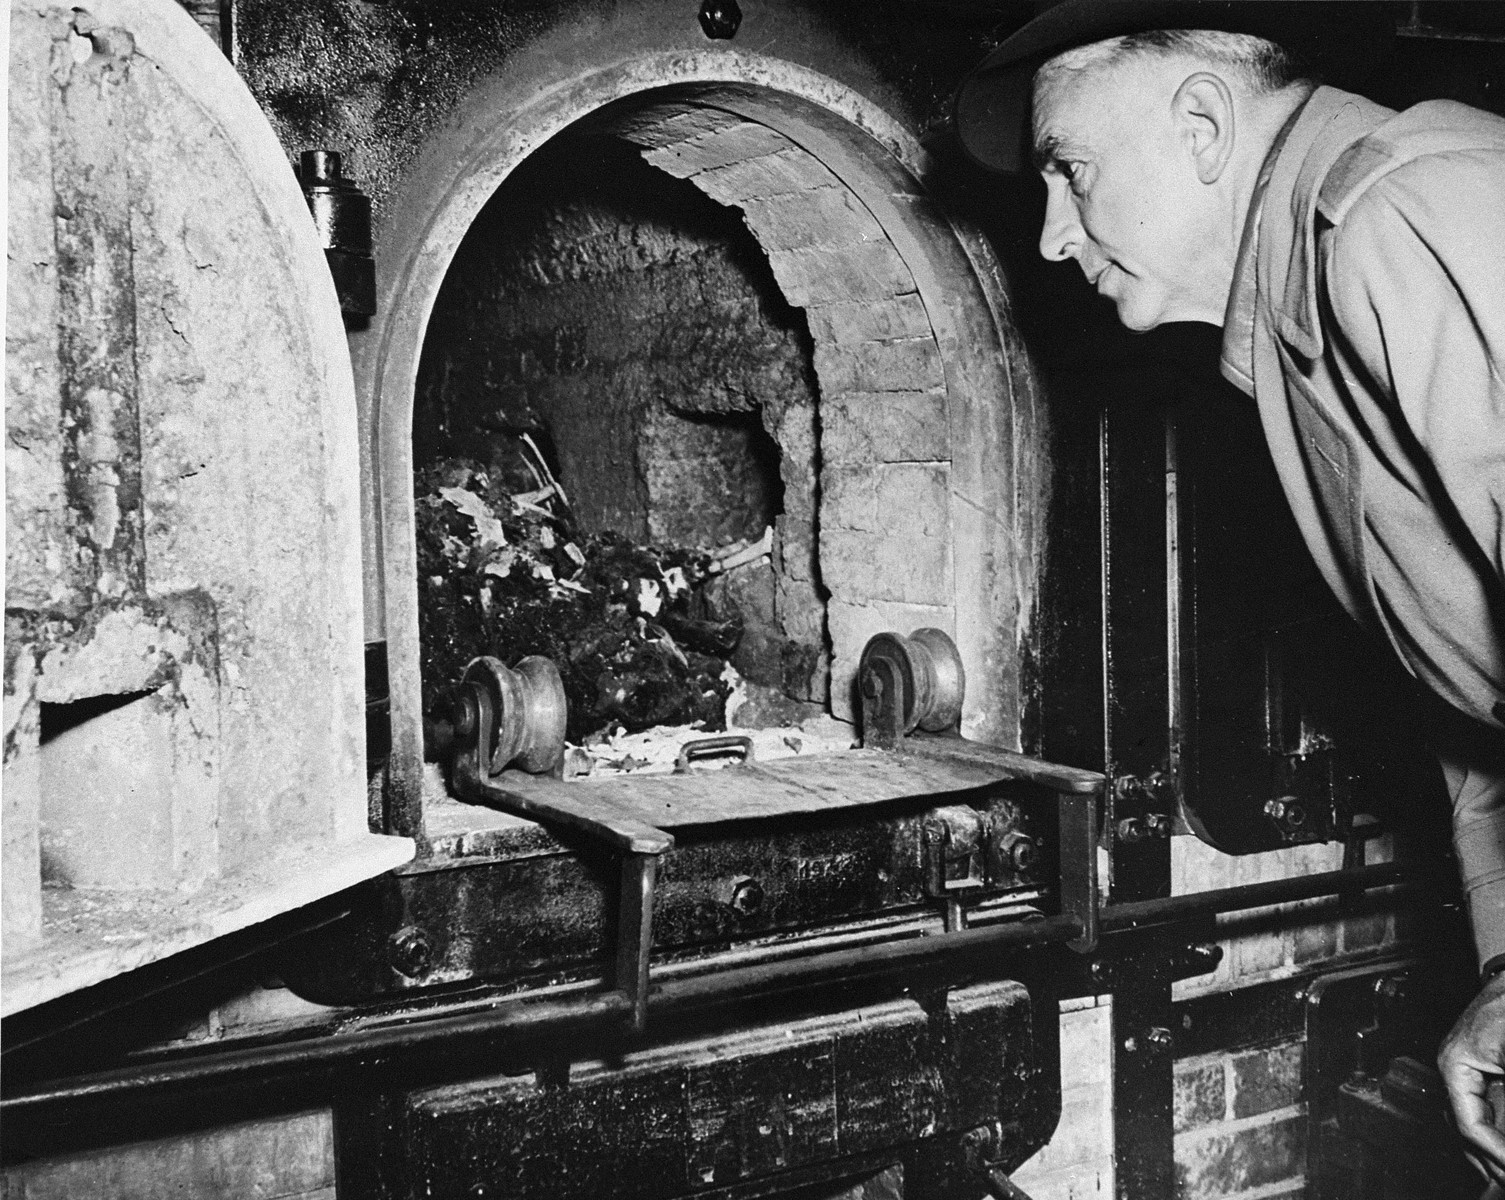 Congressman Ed V. Izak of California, a member of a Congressional delegation that traveled to Germany to view evidence of Nazi atrocities, looking at human remains in a crematorium oven.